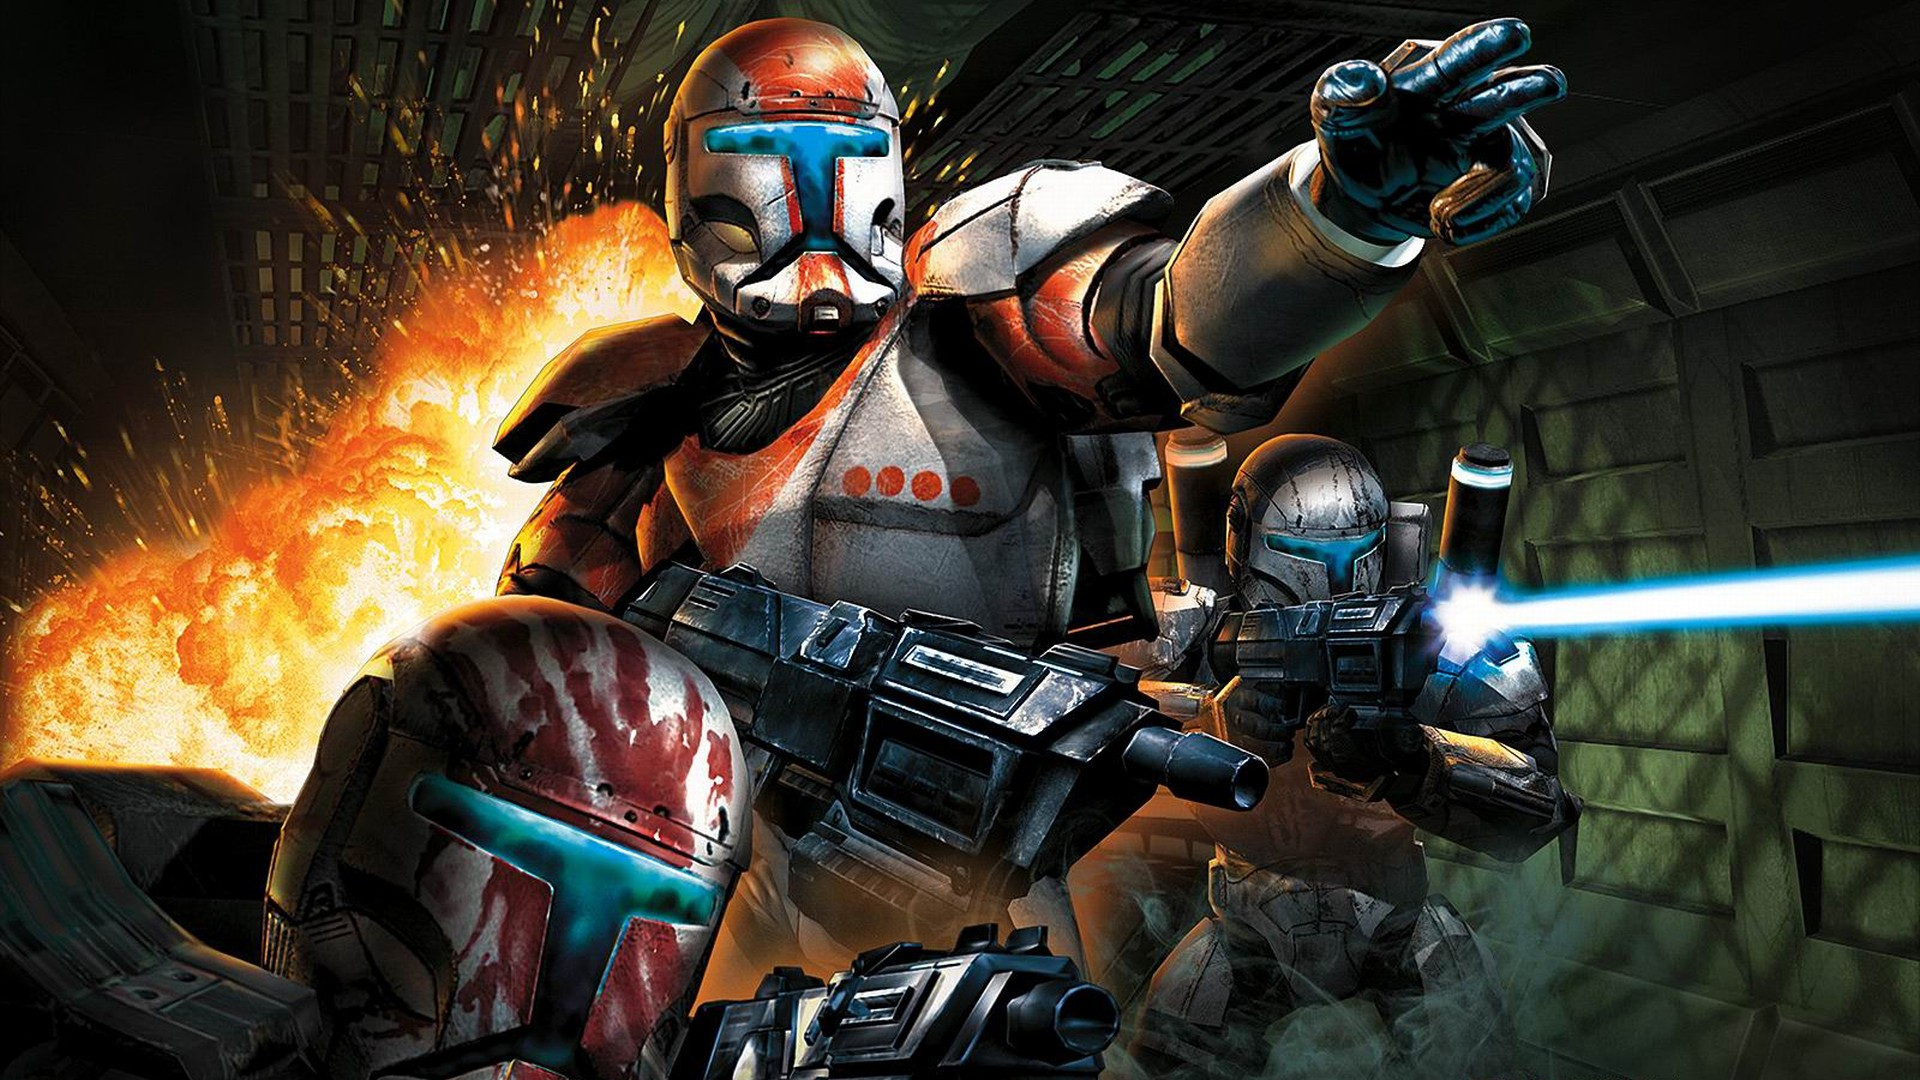 Арт к игре Star Wars: Republic Commando